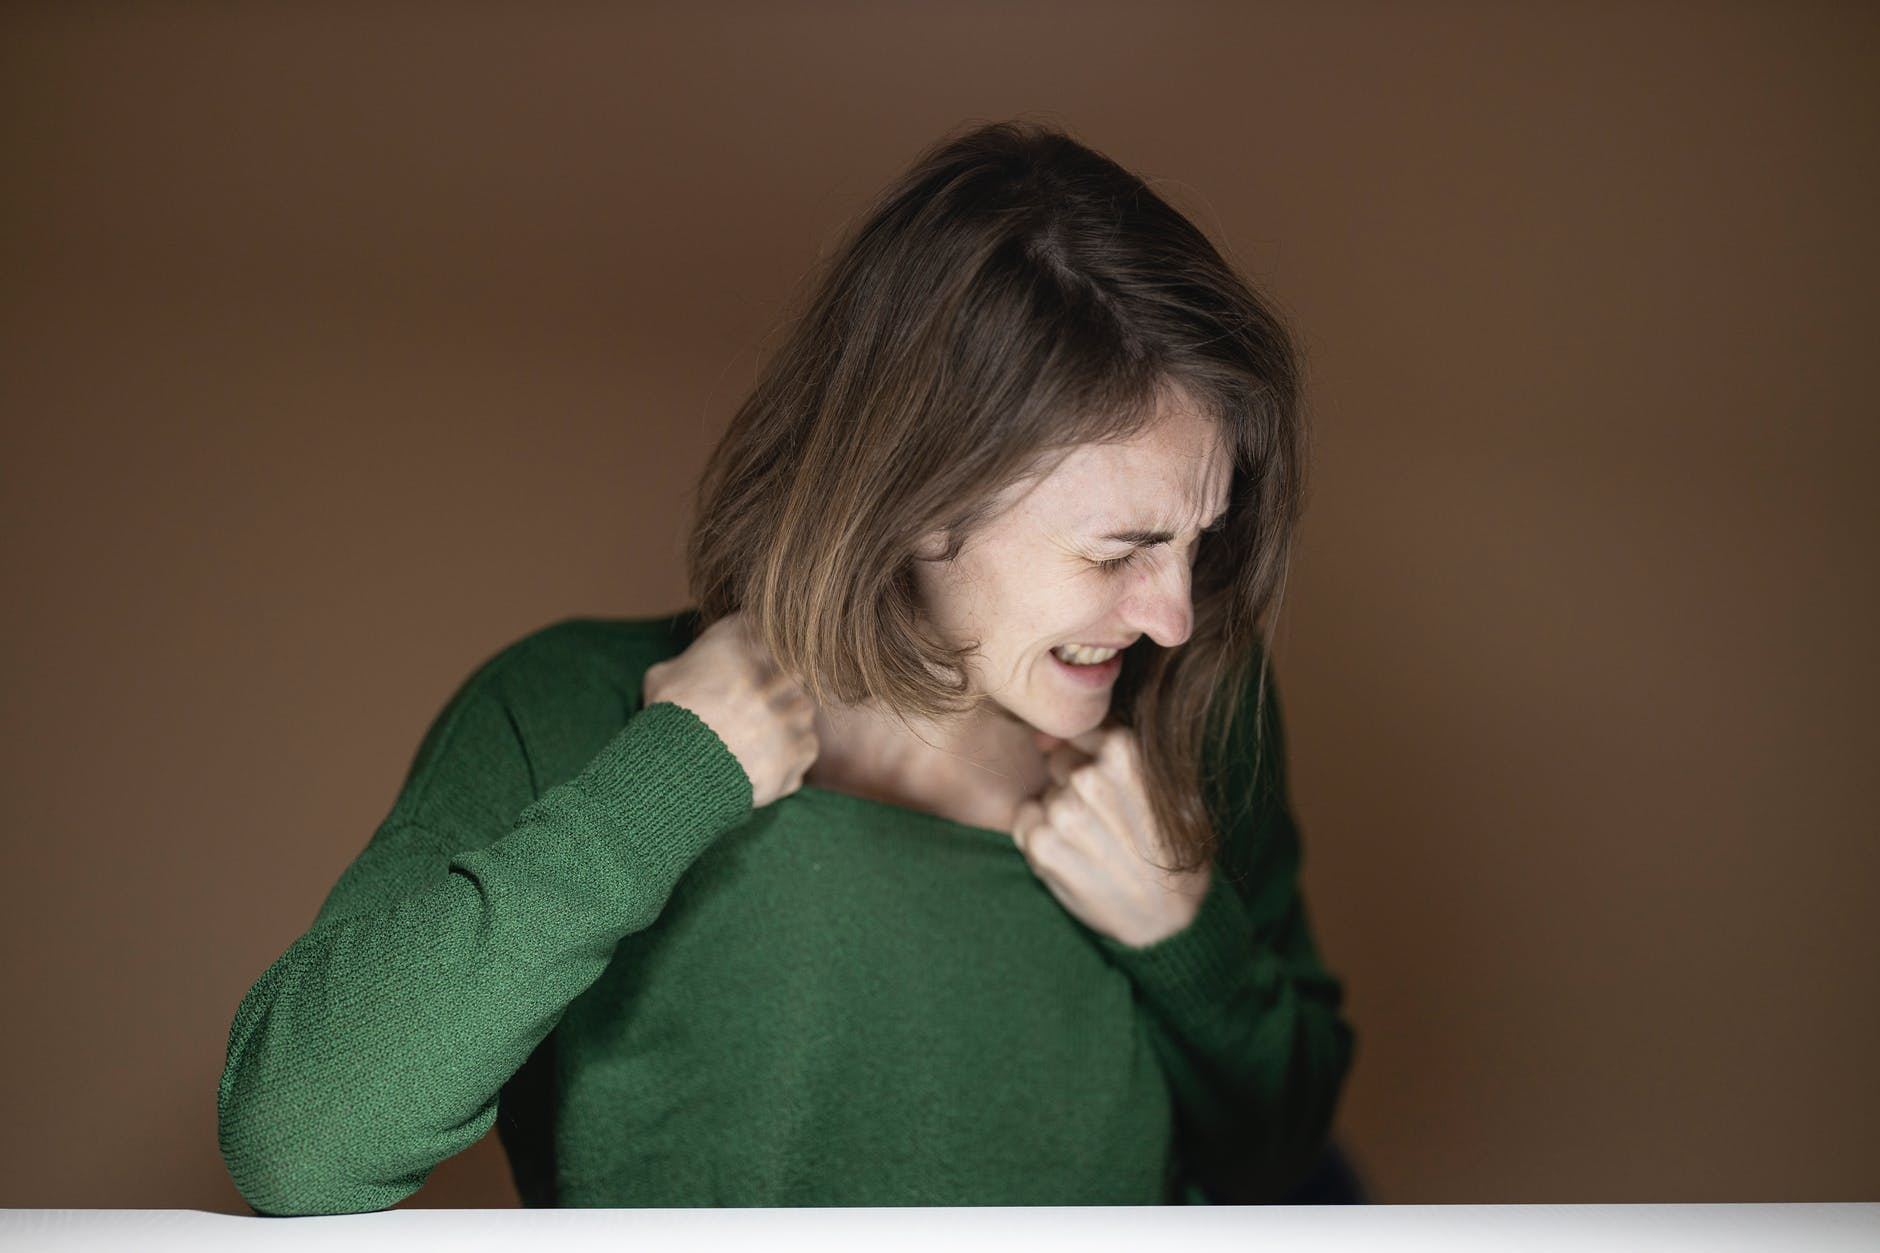 Best Exercises for Neck Pain: THESE easy exercises will give you relief from neck pain